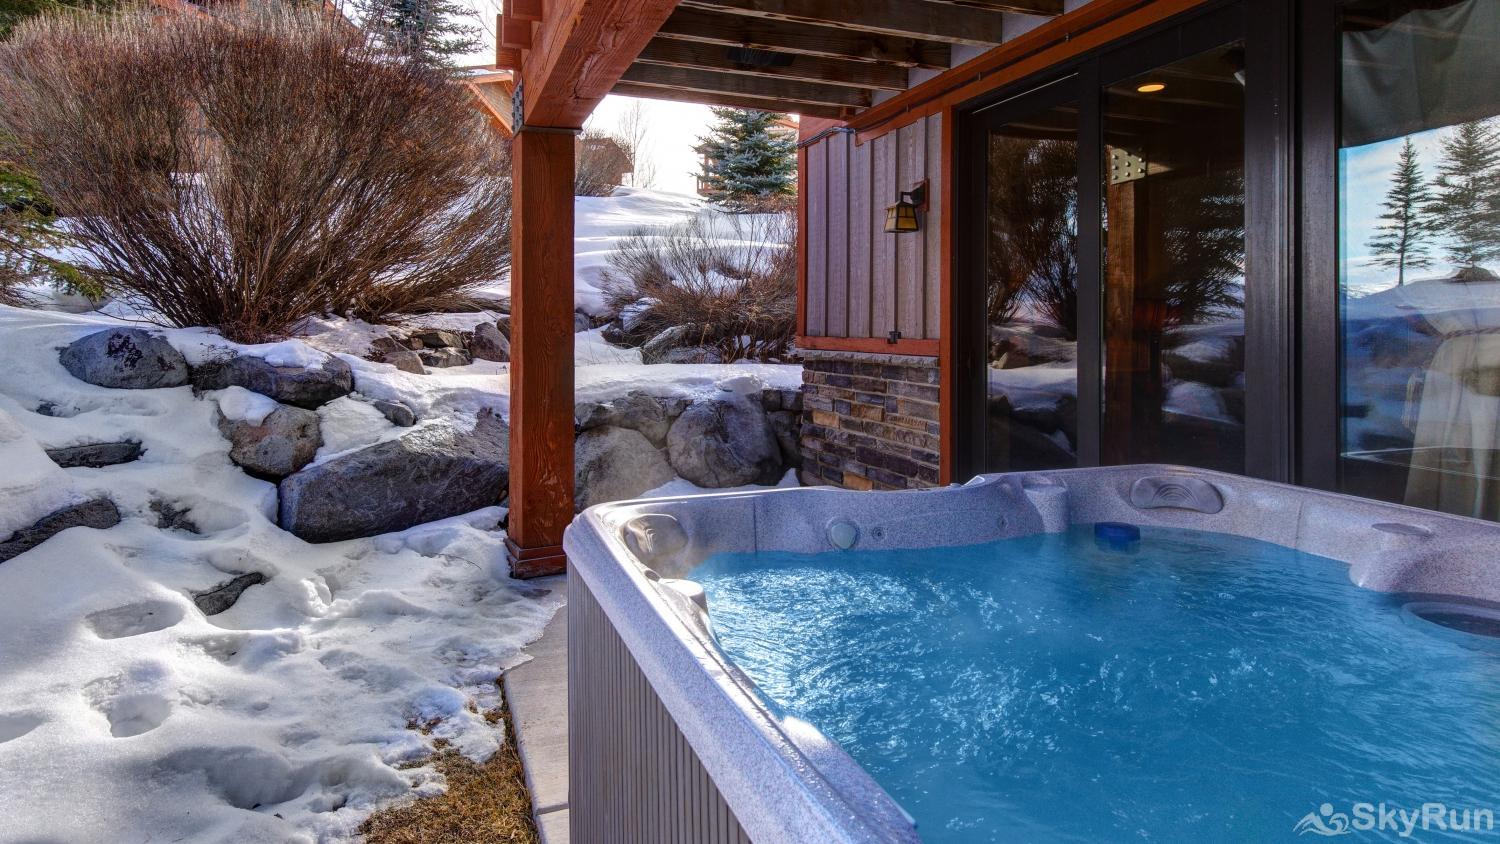 Stillwater Shores 1273 Secluded Hot Tub